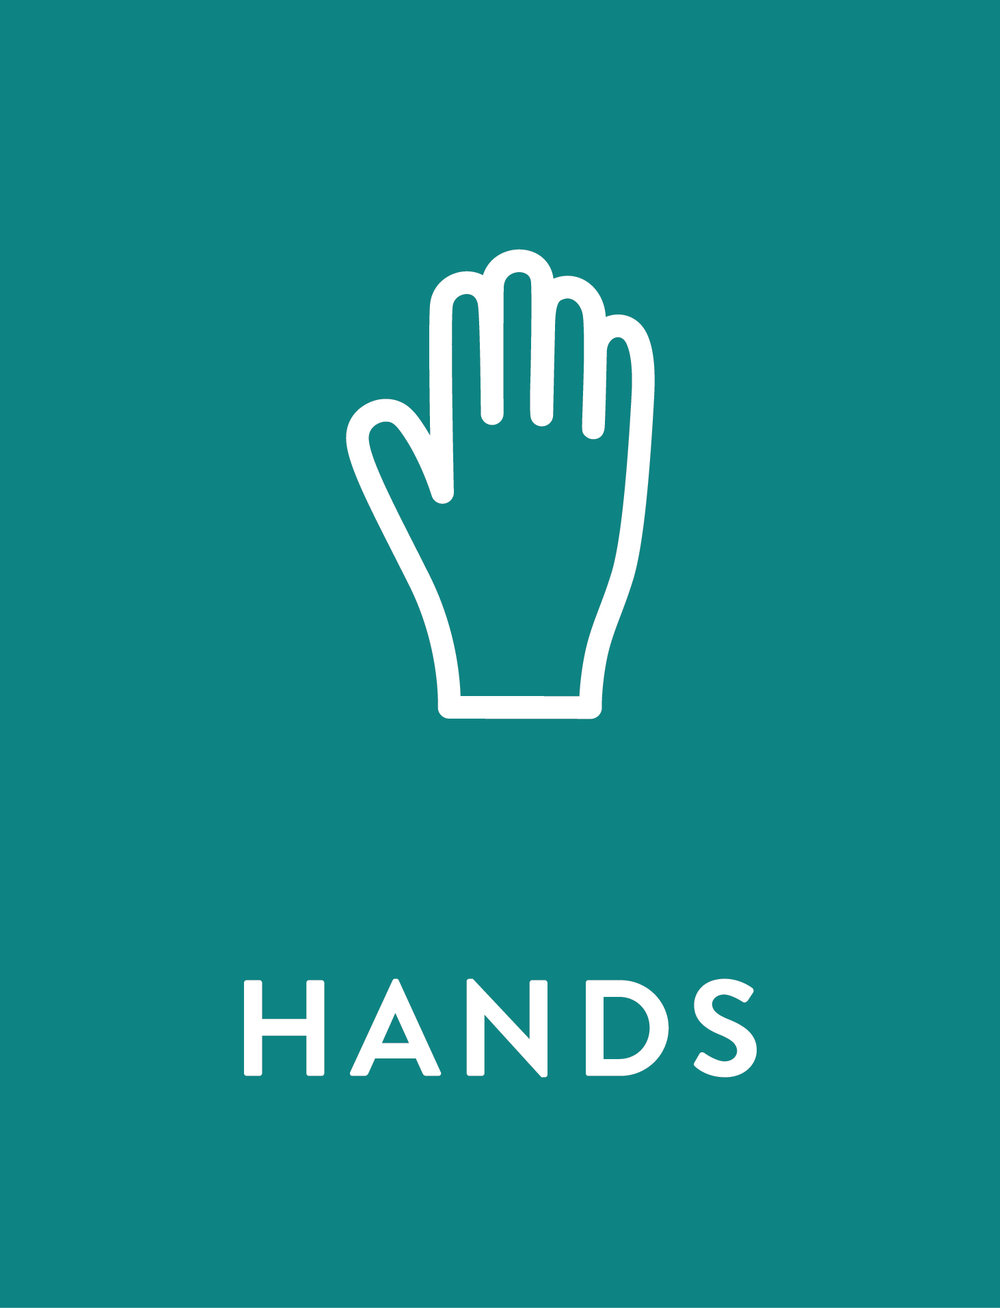 _4H_Icons_3_Hands.jpg